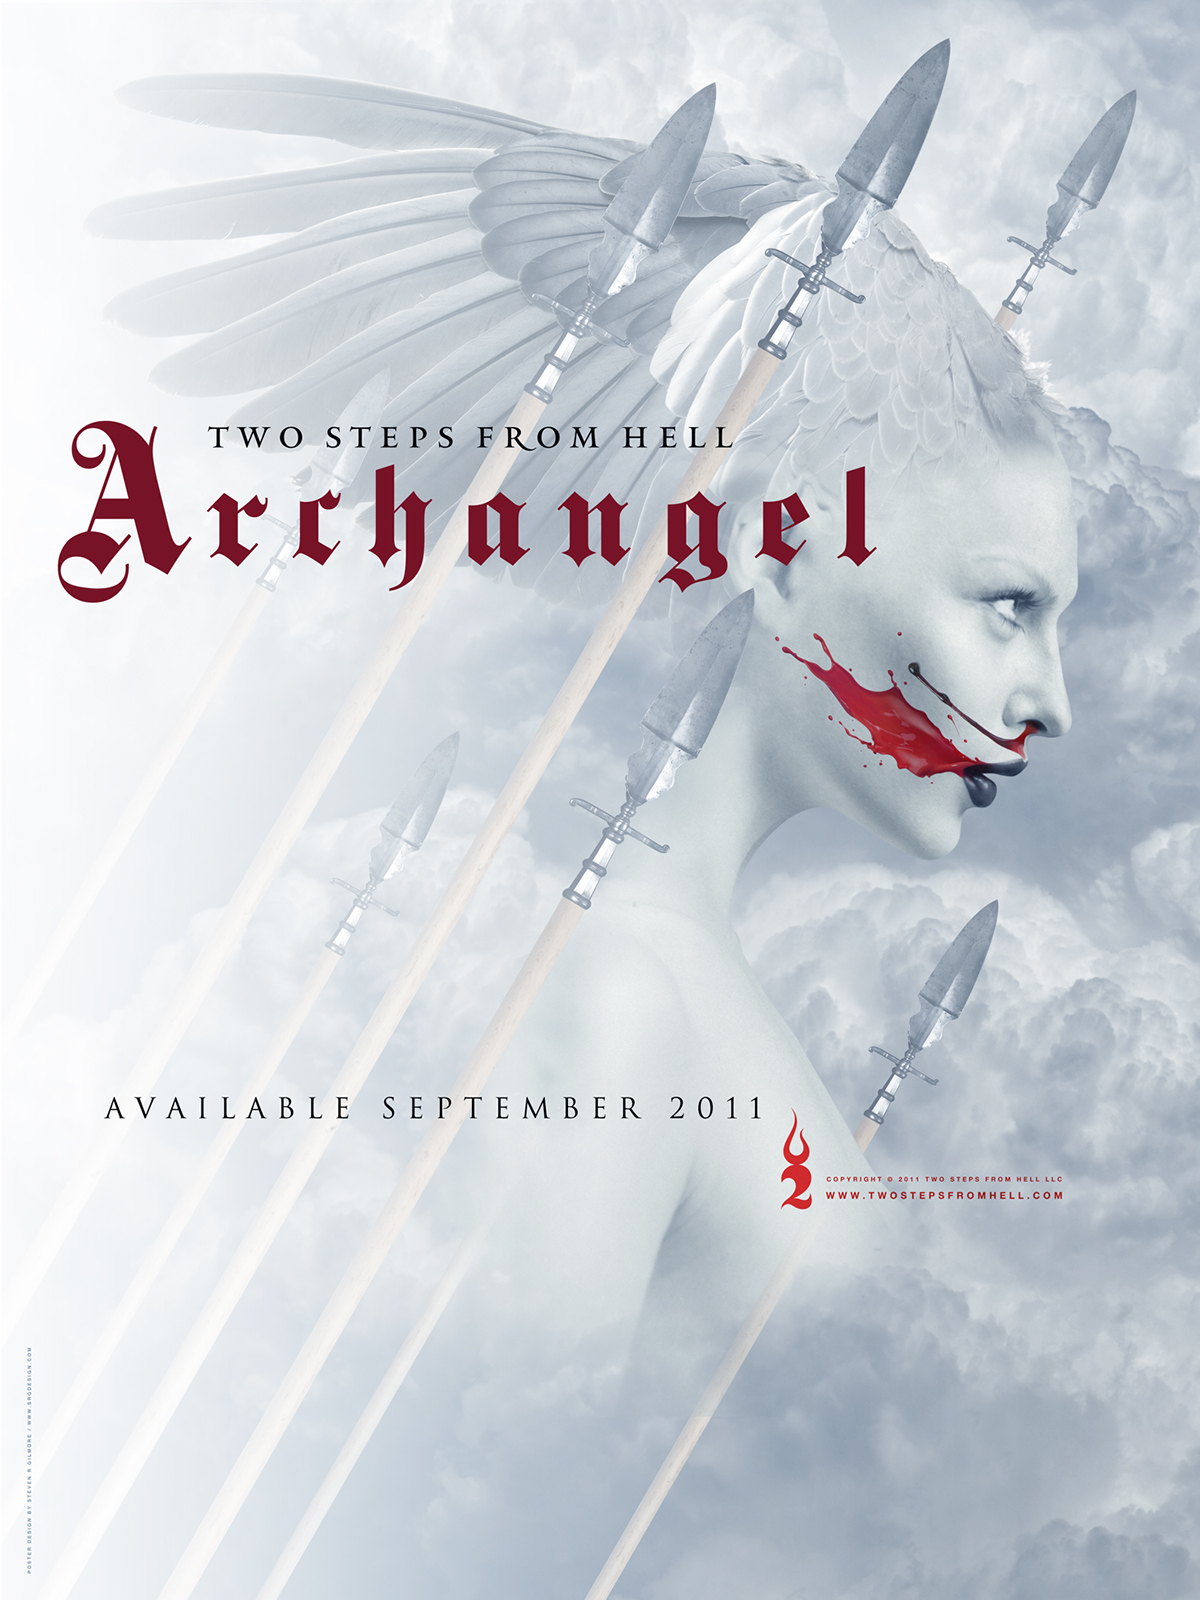 Two Steps From Hell Archangel Poster And Cd On Behance